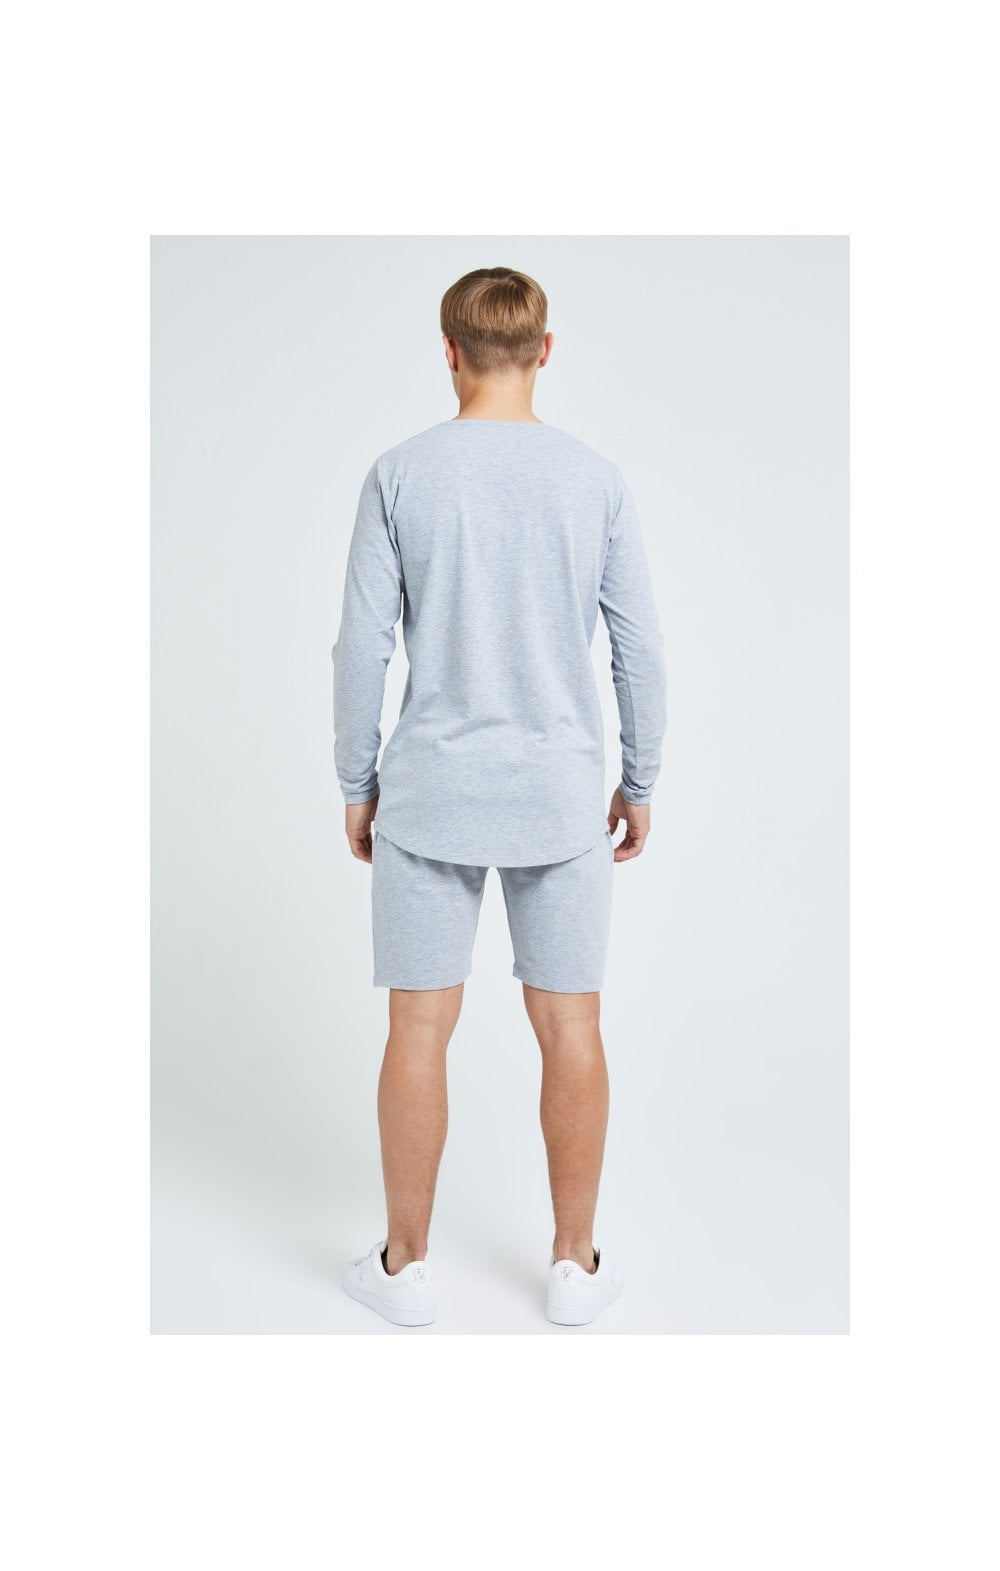 Load image into Gallery viewer, Illusive London Core Jersey Shorts - Grey Marl (6)